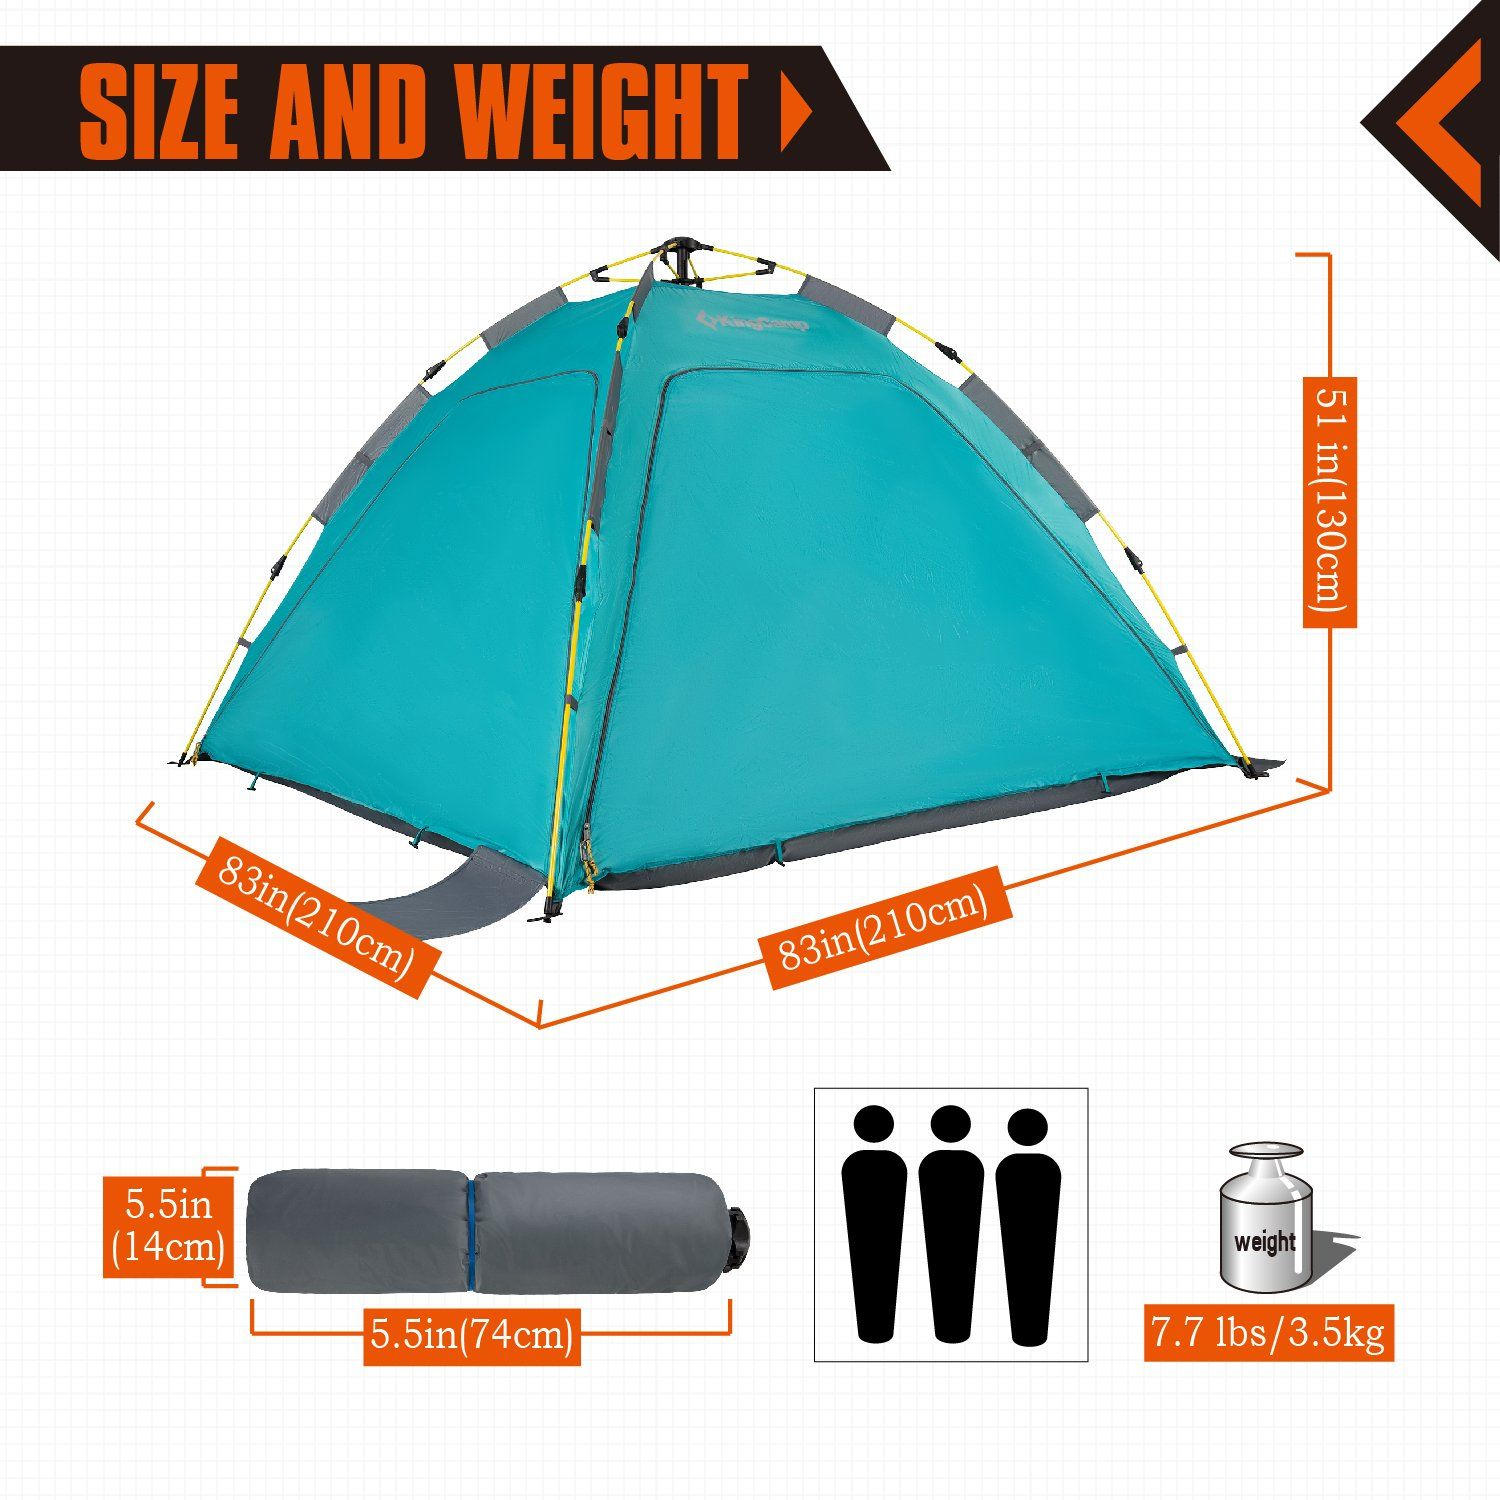 Kingcamp Beach Sun Shelter Upf 50 Family Camping Tent For 4person With Detachable Three Side Walls Cyan Details Can B Family Tent Camping Tent Tent Camping